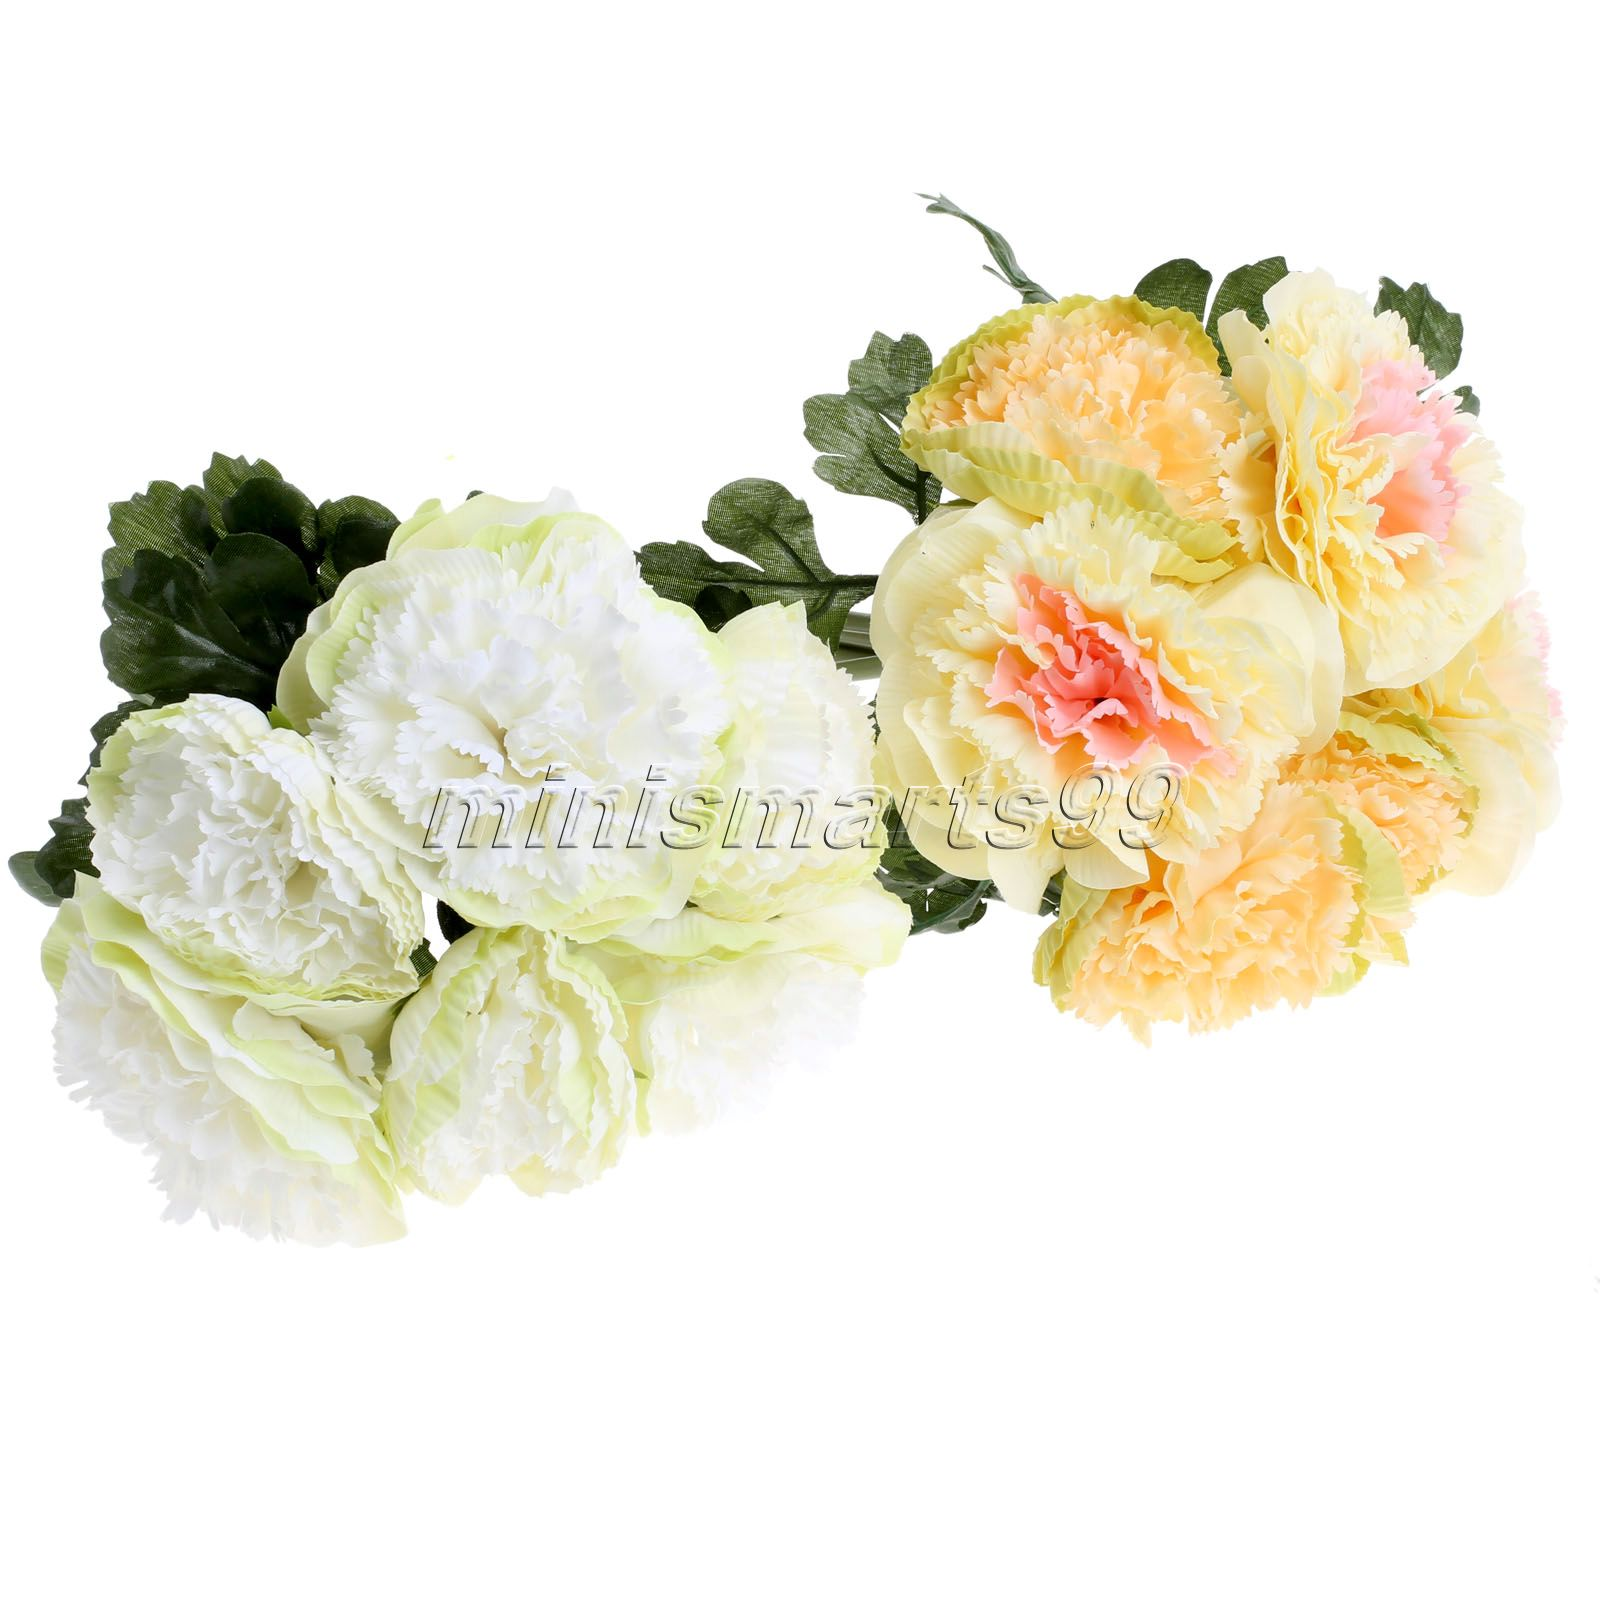 6pcsbunch artificial peony flowers wedding bouquet fake silk 6pcsbunch artificial peony flowers wedding bouquet fake silk flower peony bride bridesmaid flowers party home wedding decor izmirmasajfo